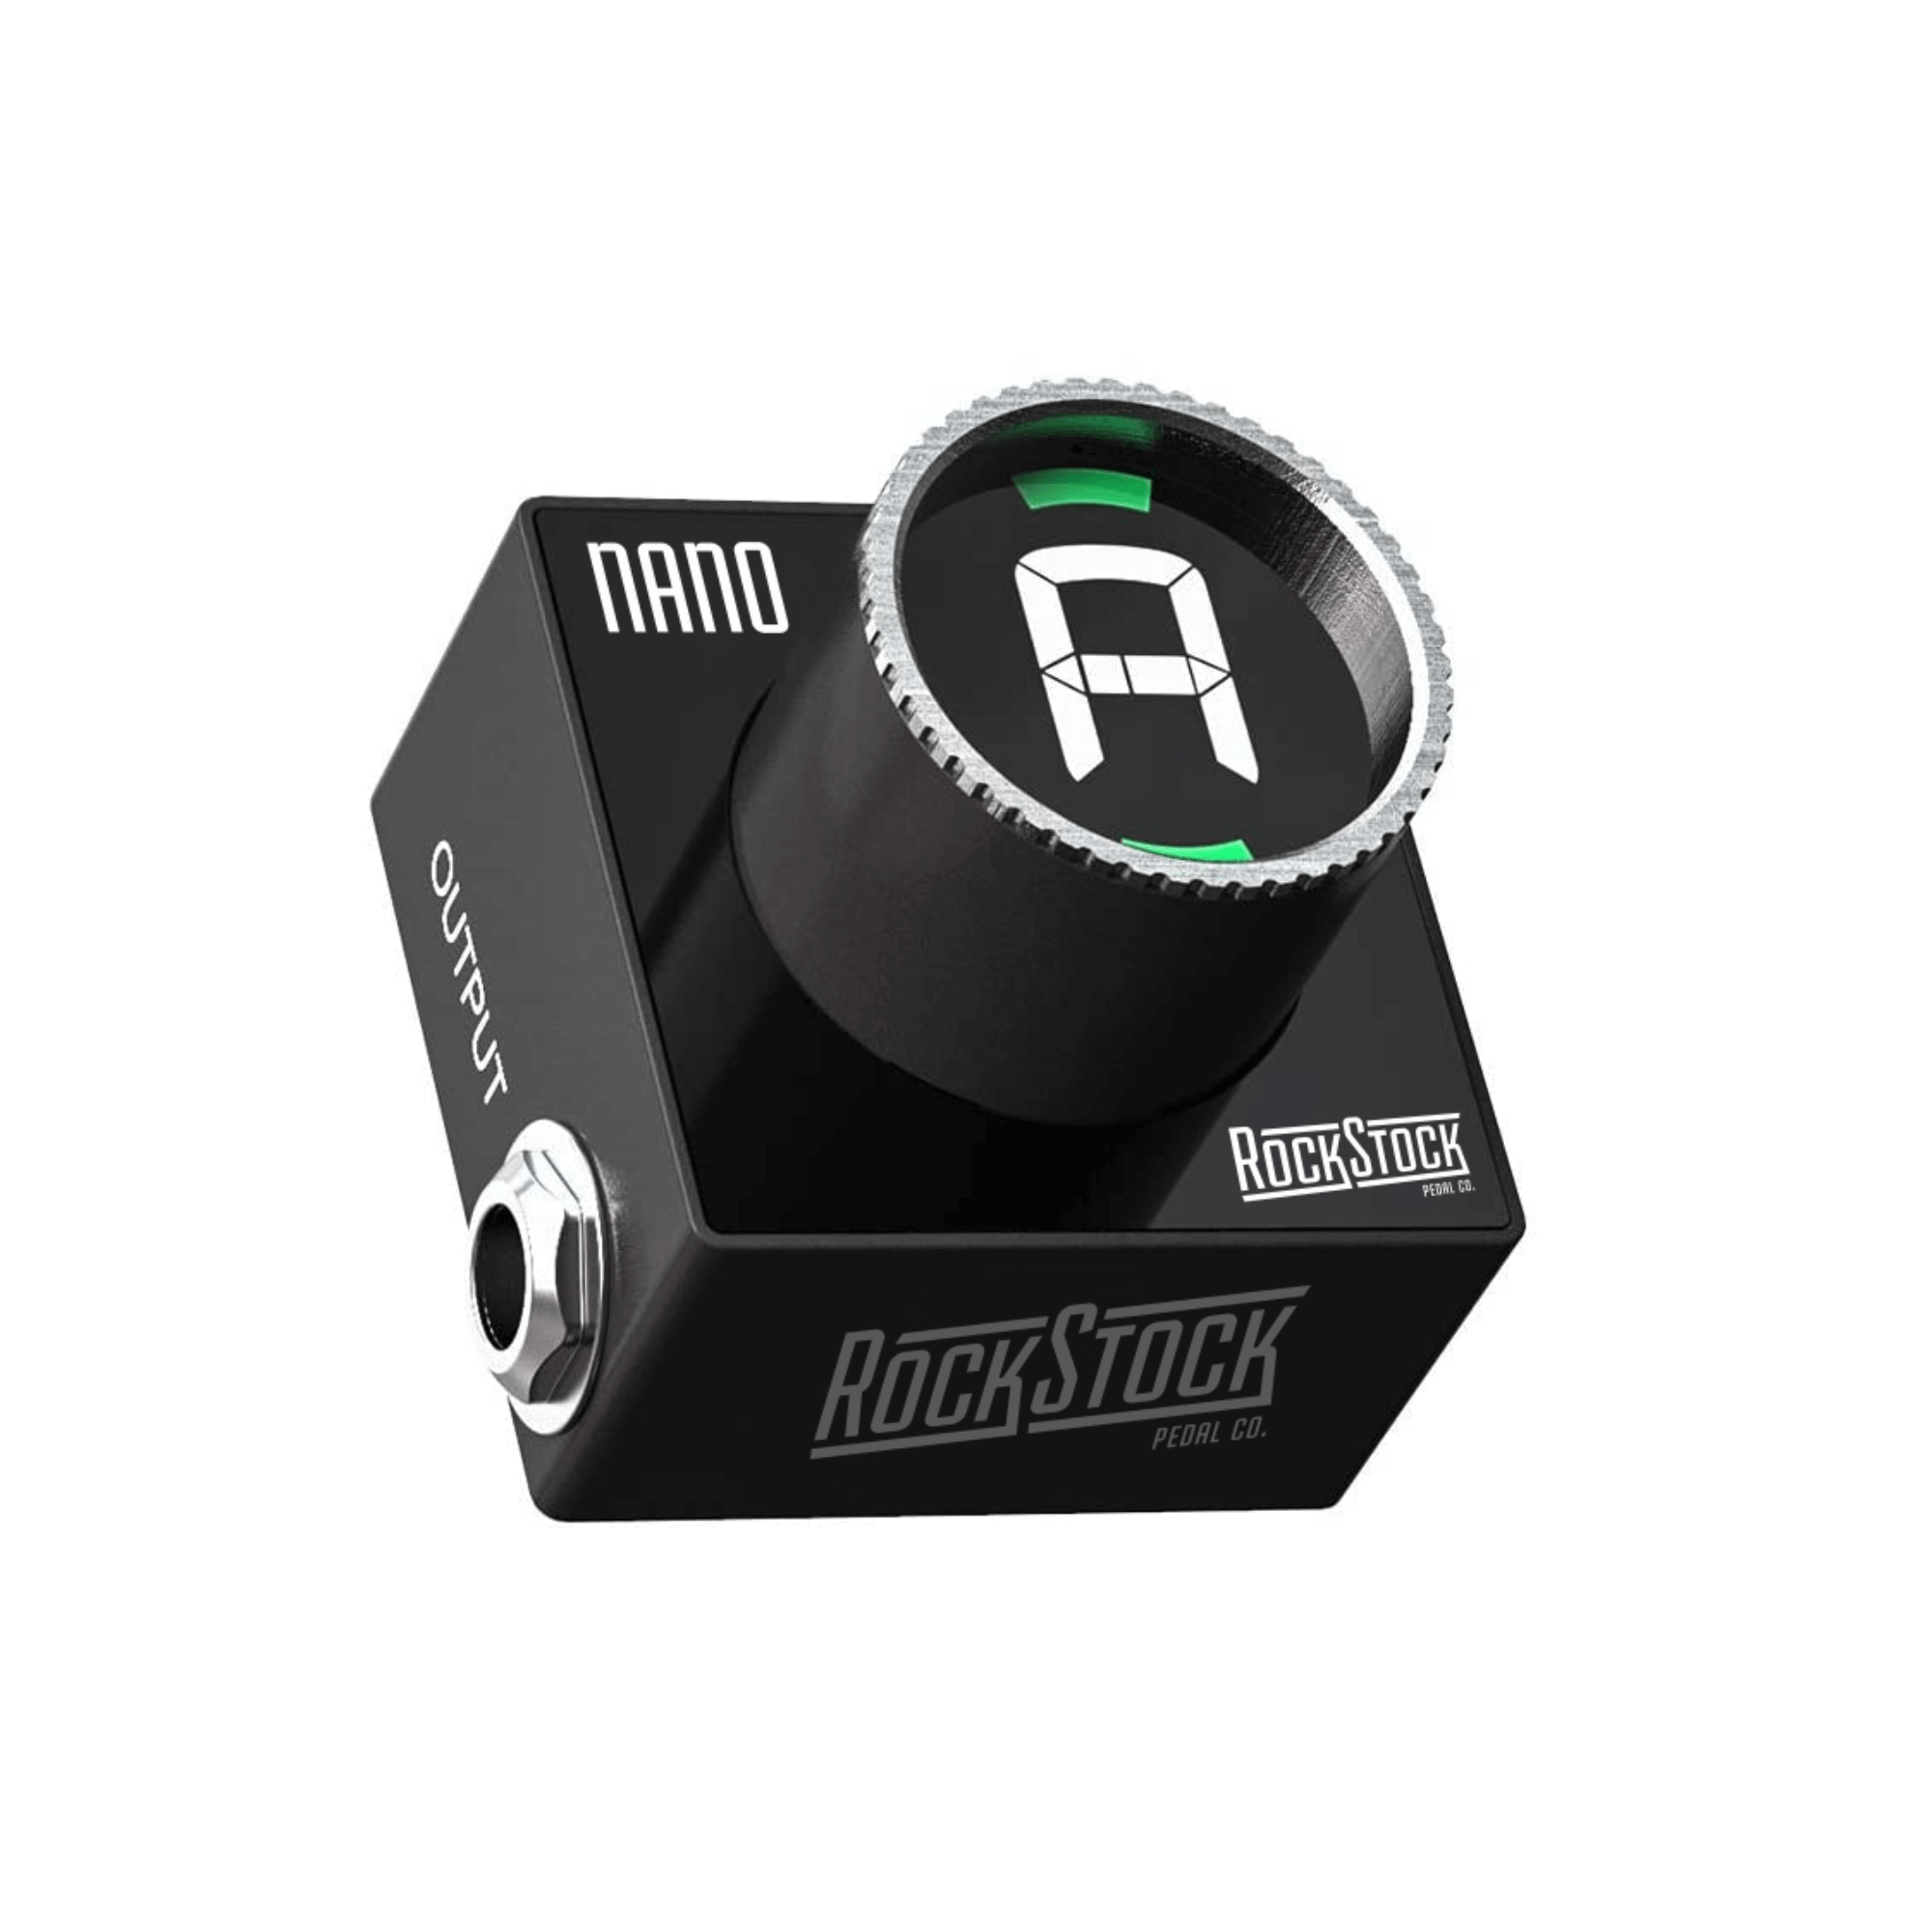 Rock Stock Nano Guitar Tuner Pedal